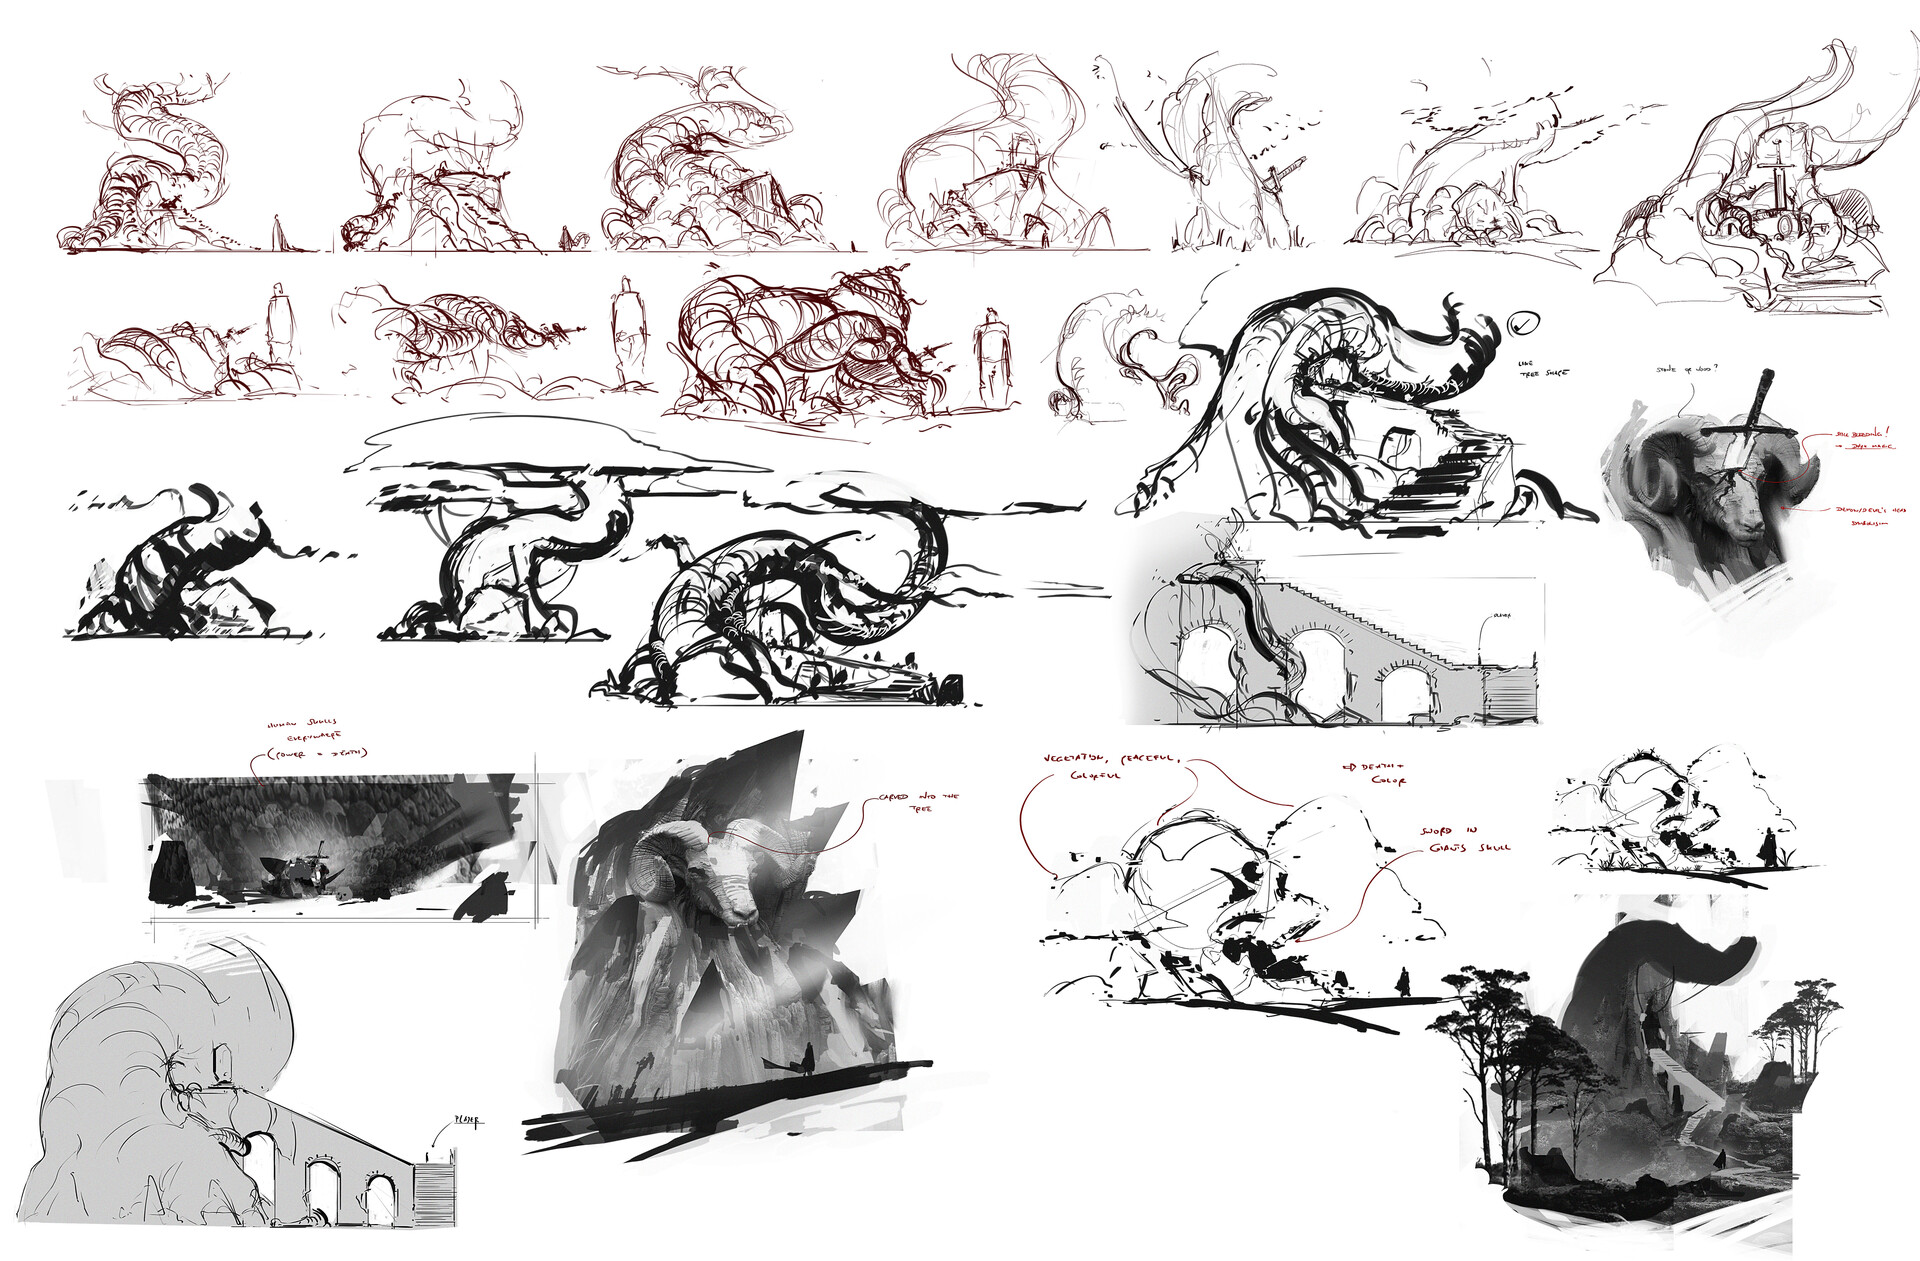 Exploration sketches for the scene itself.